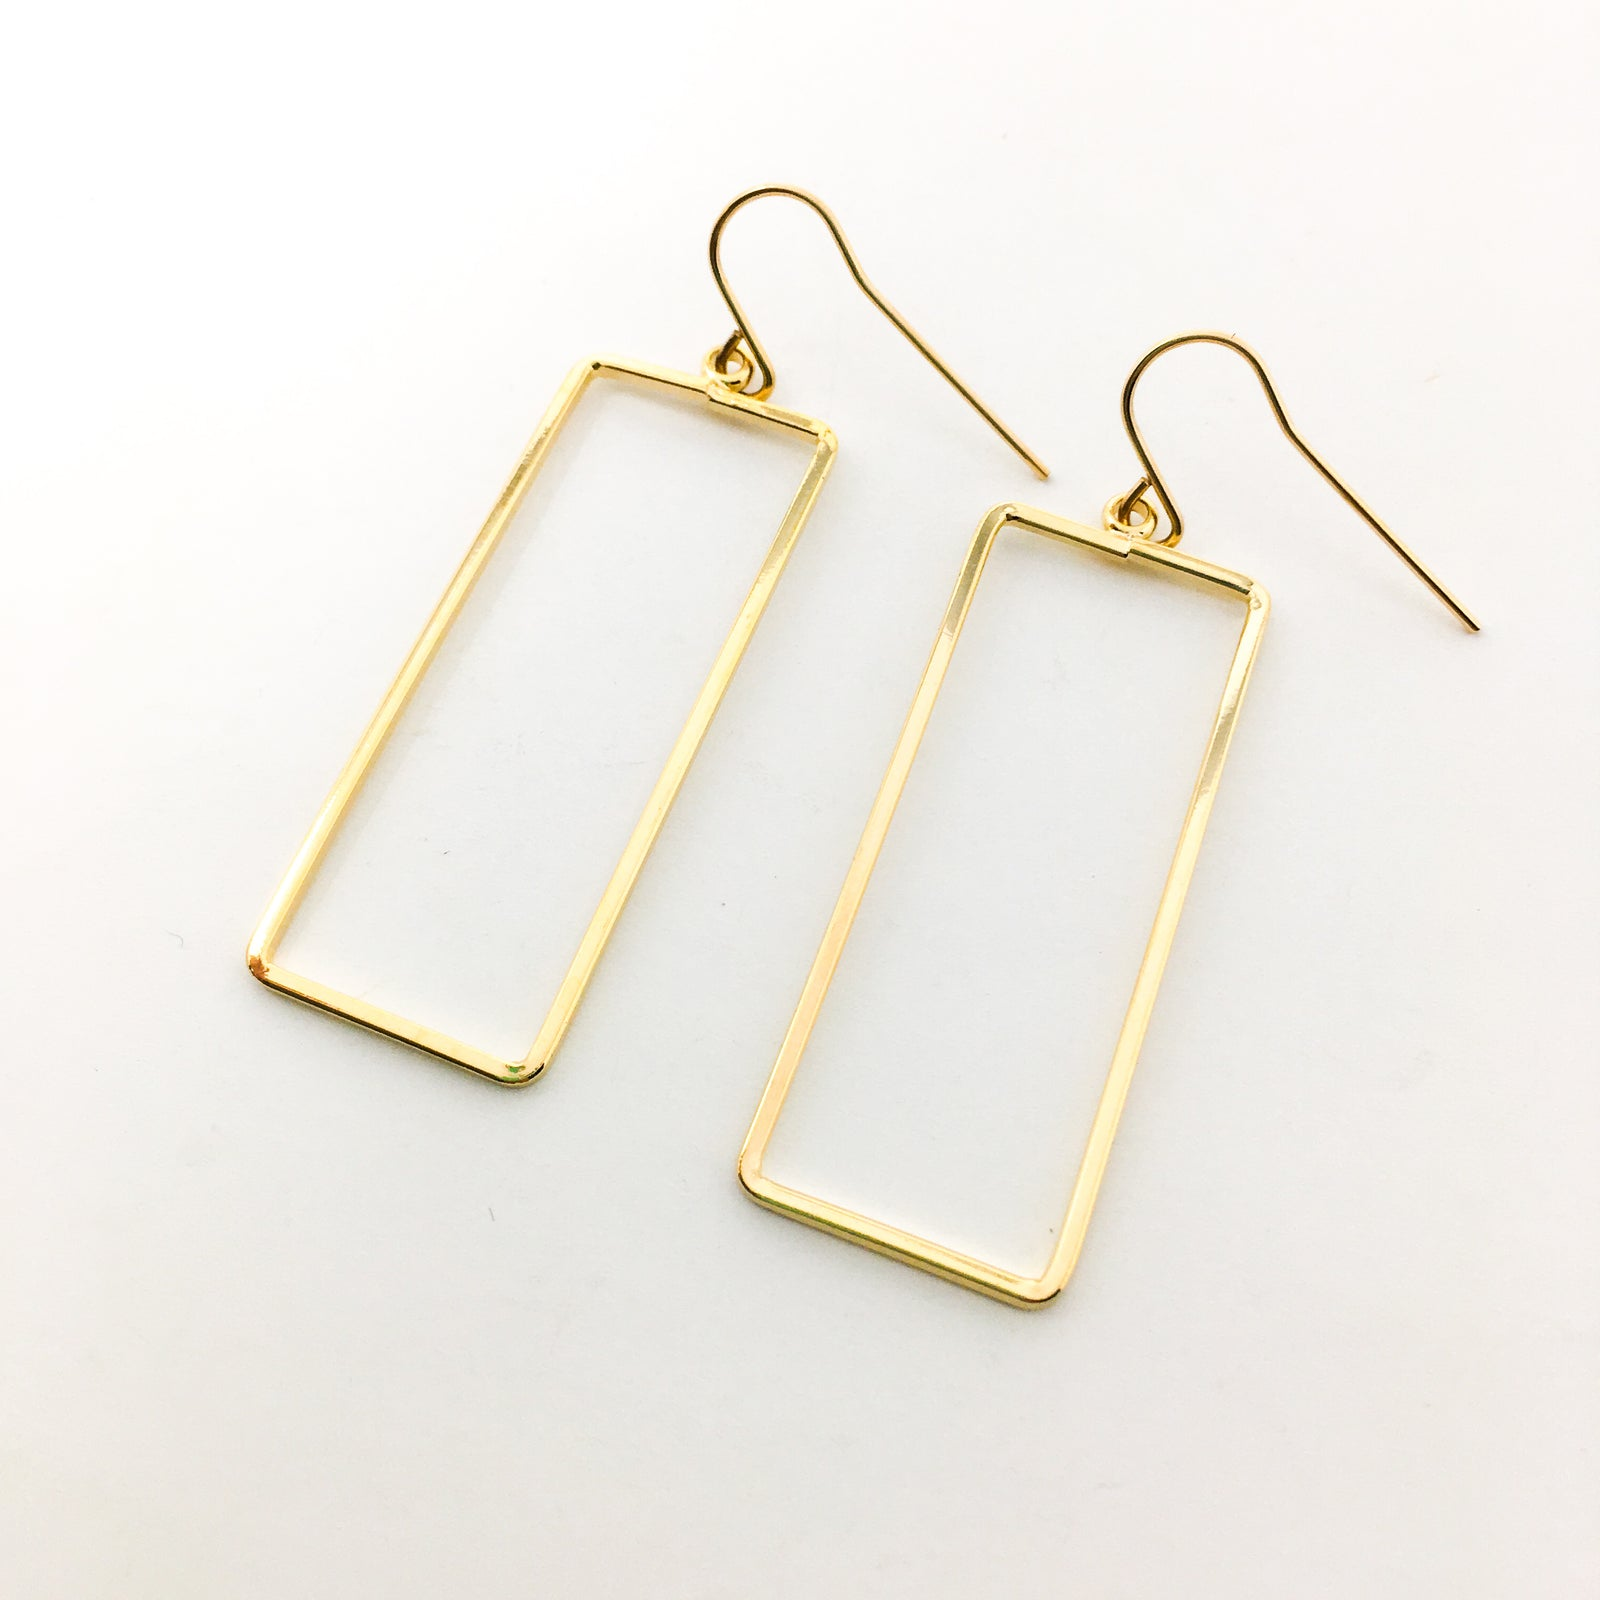 14K GOLD-FILLED RECTANGLE EARRINGS